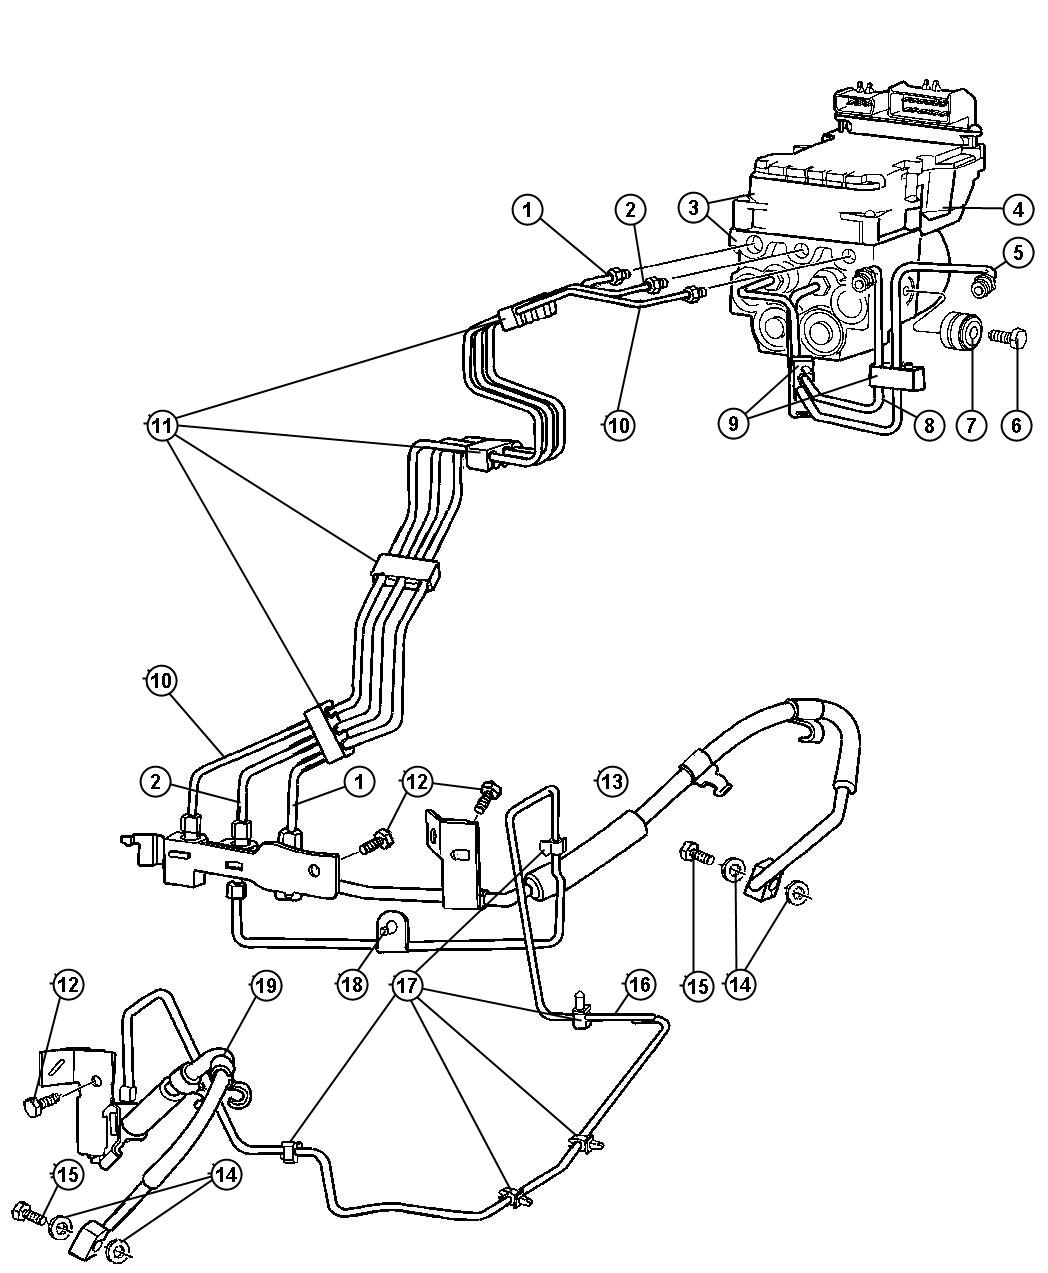 Wiring diagram for 2004 dodge 2500 wiring discover your wiring wiring diagram